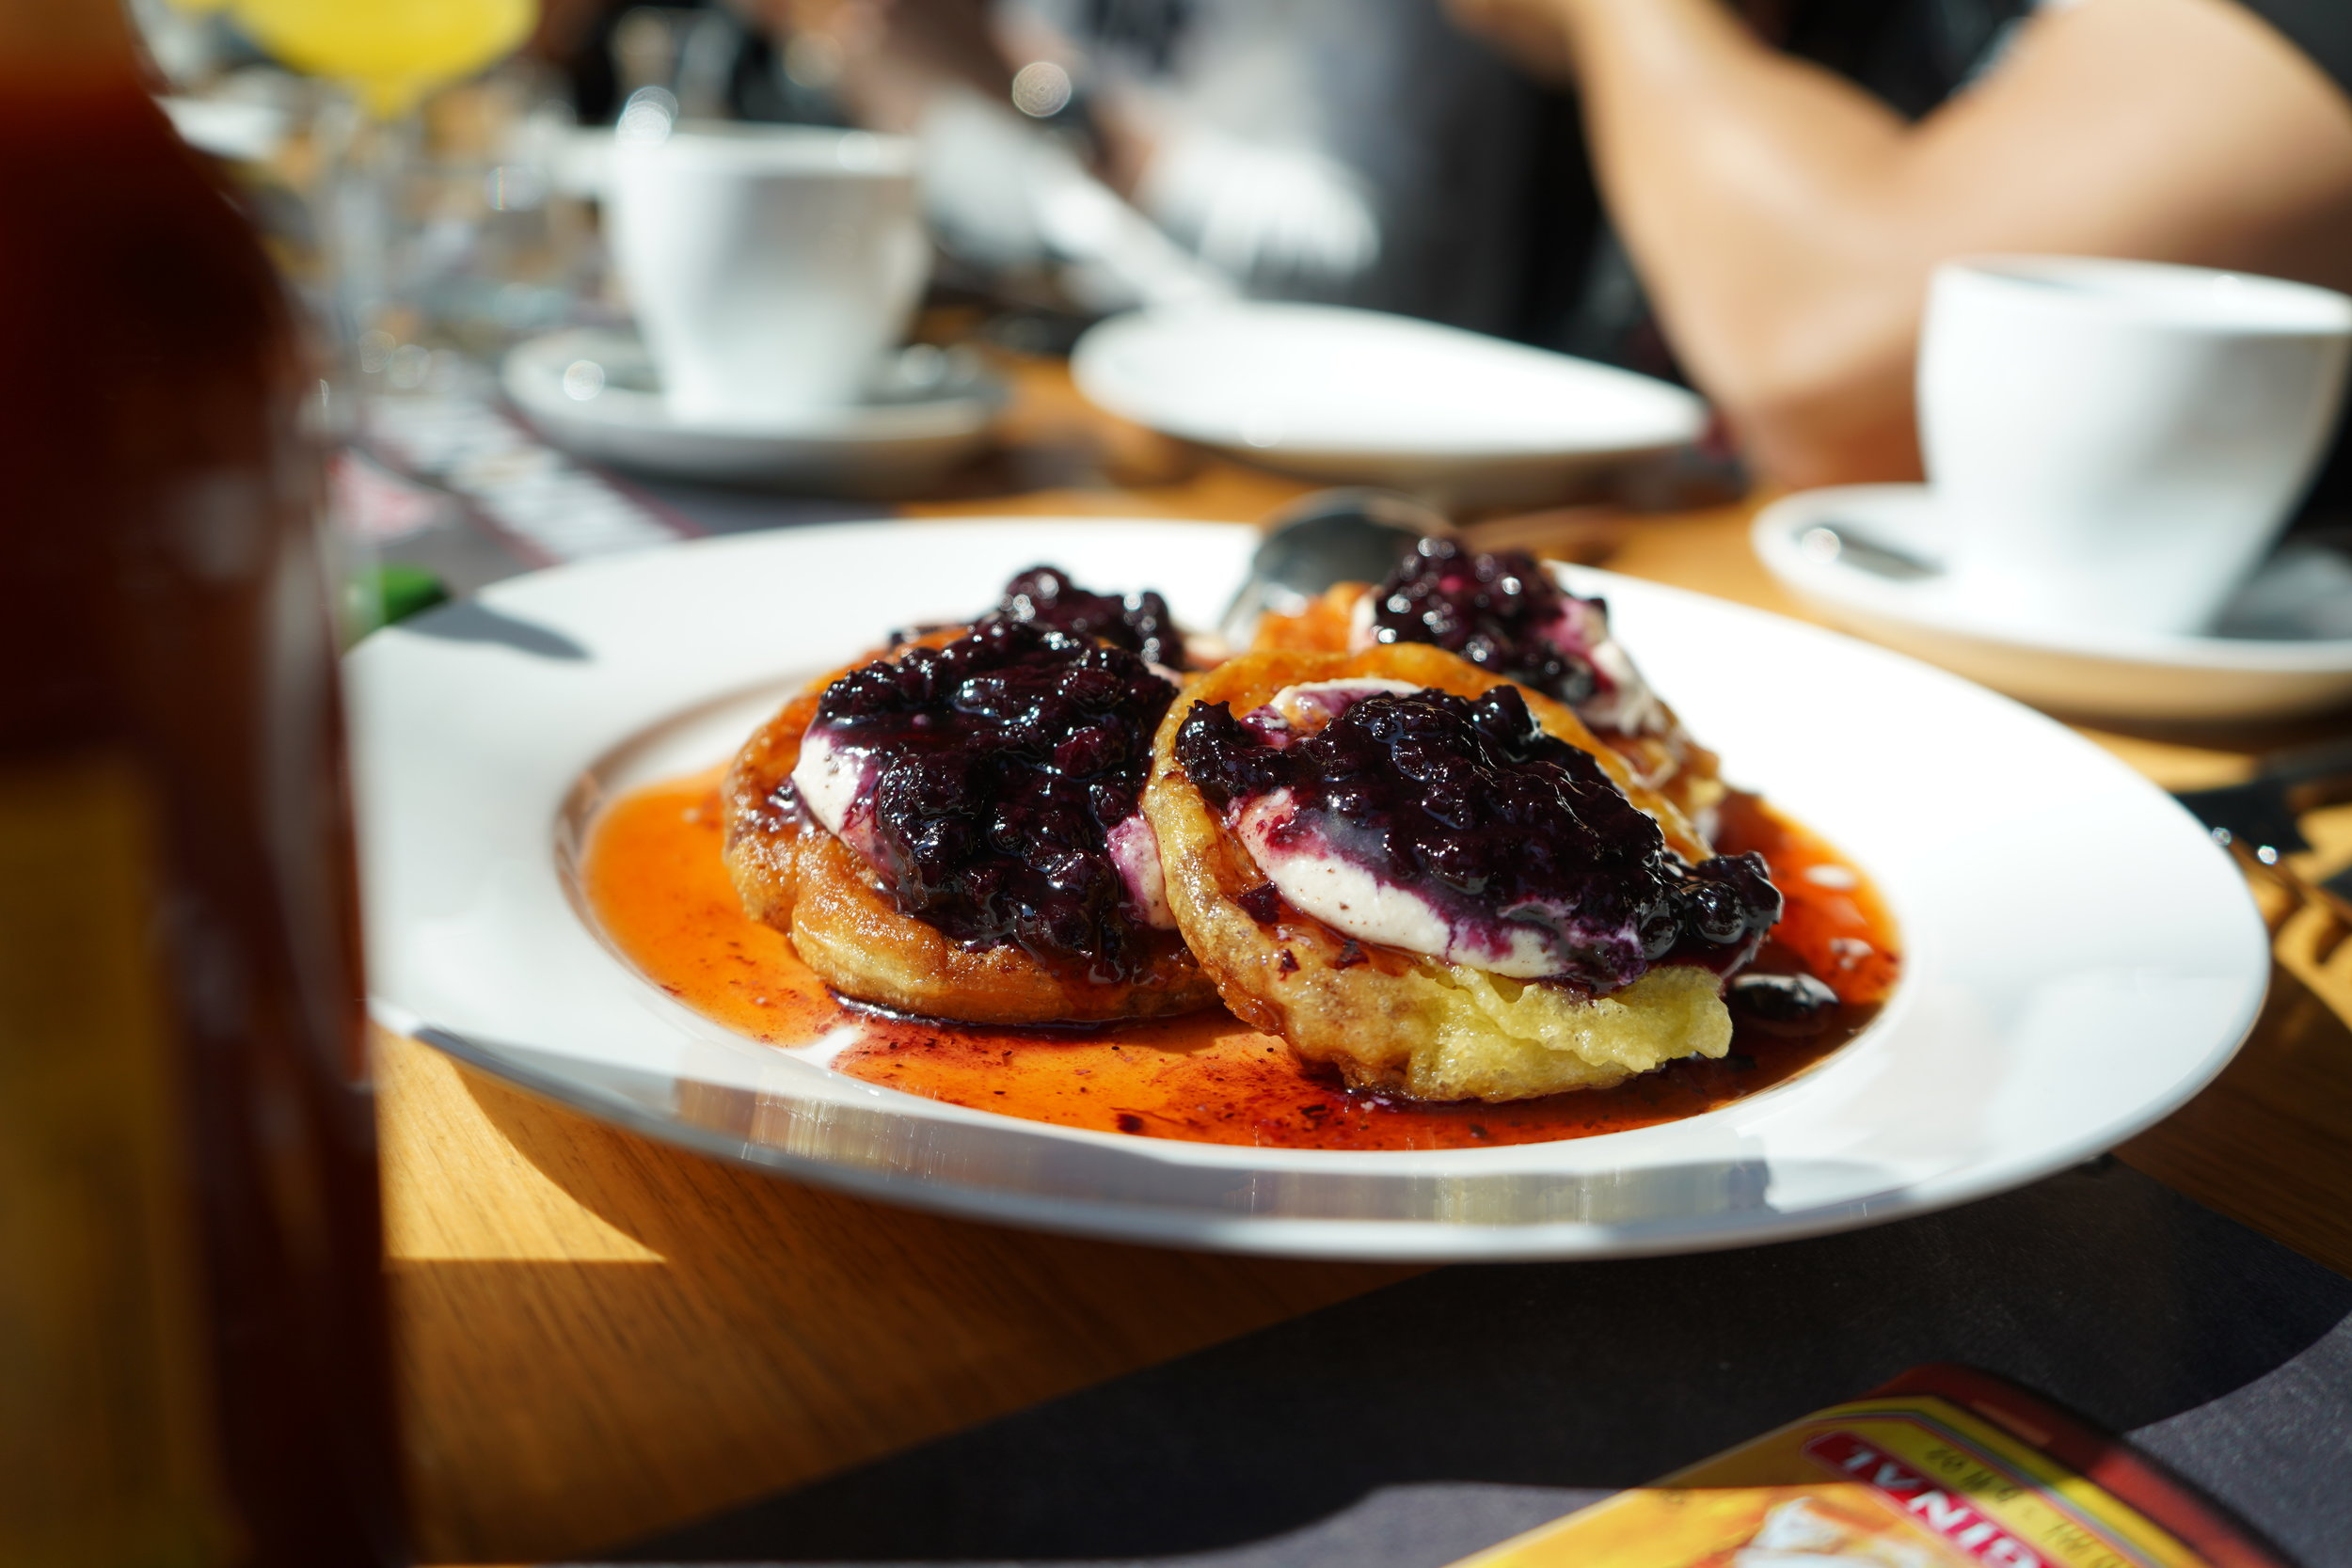 Ricotta Pancakes with Blueberry Preserves and Cholula Infused Original Maple Syrup